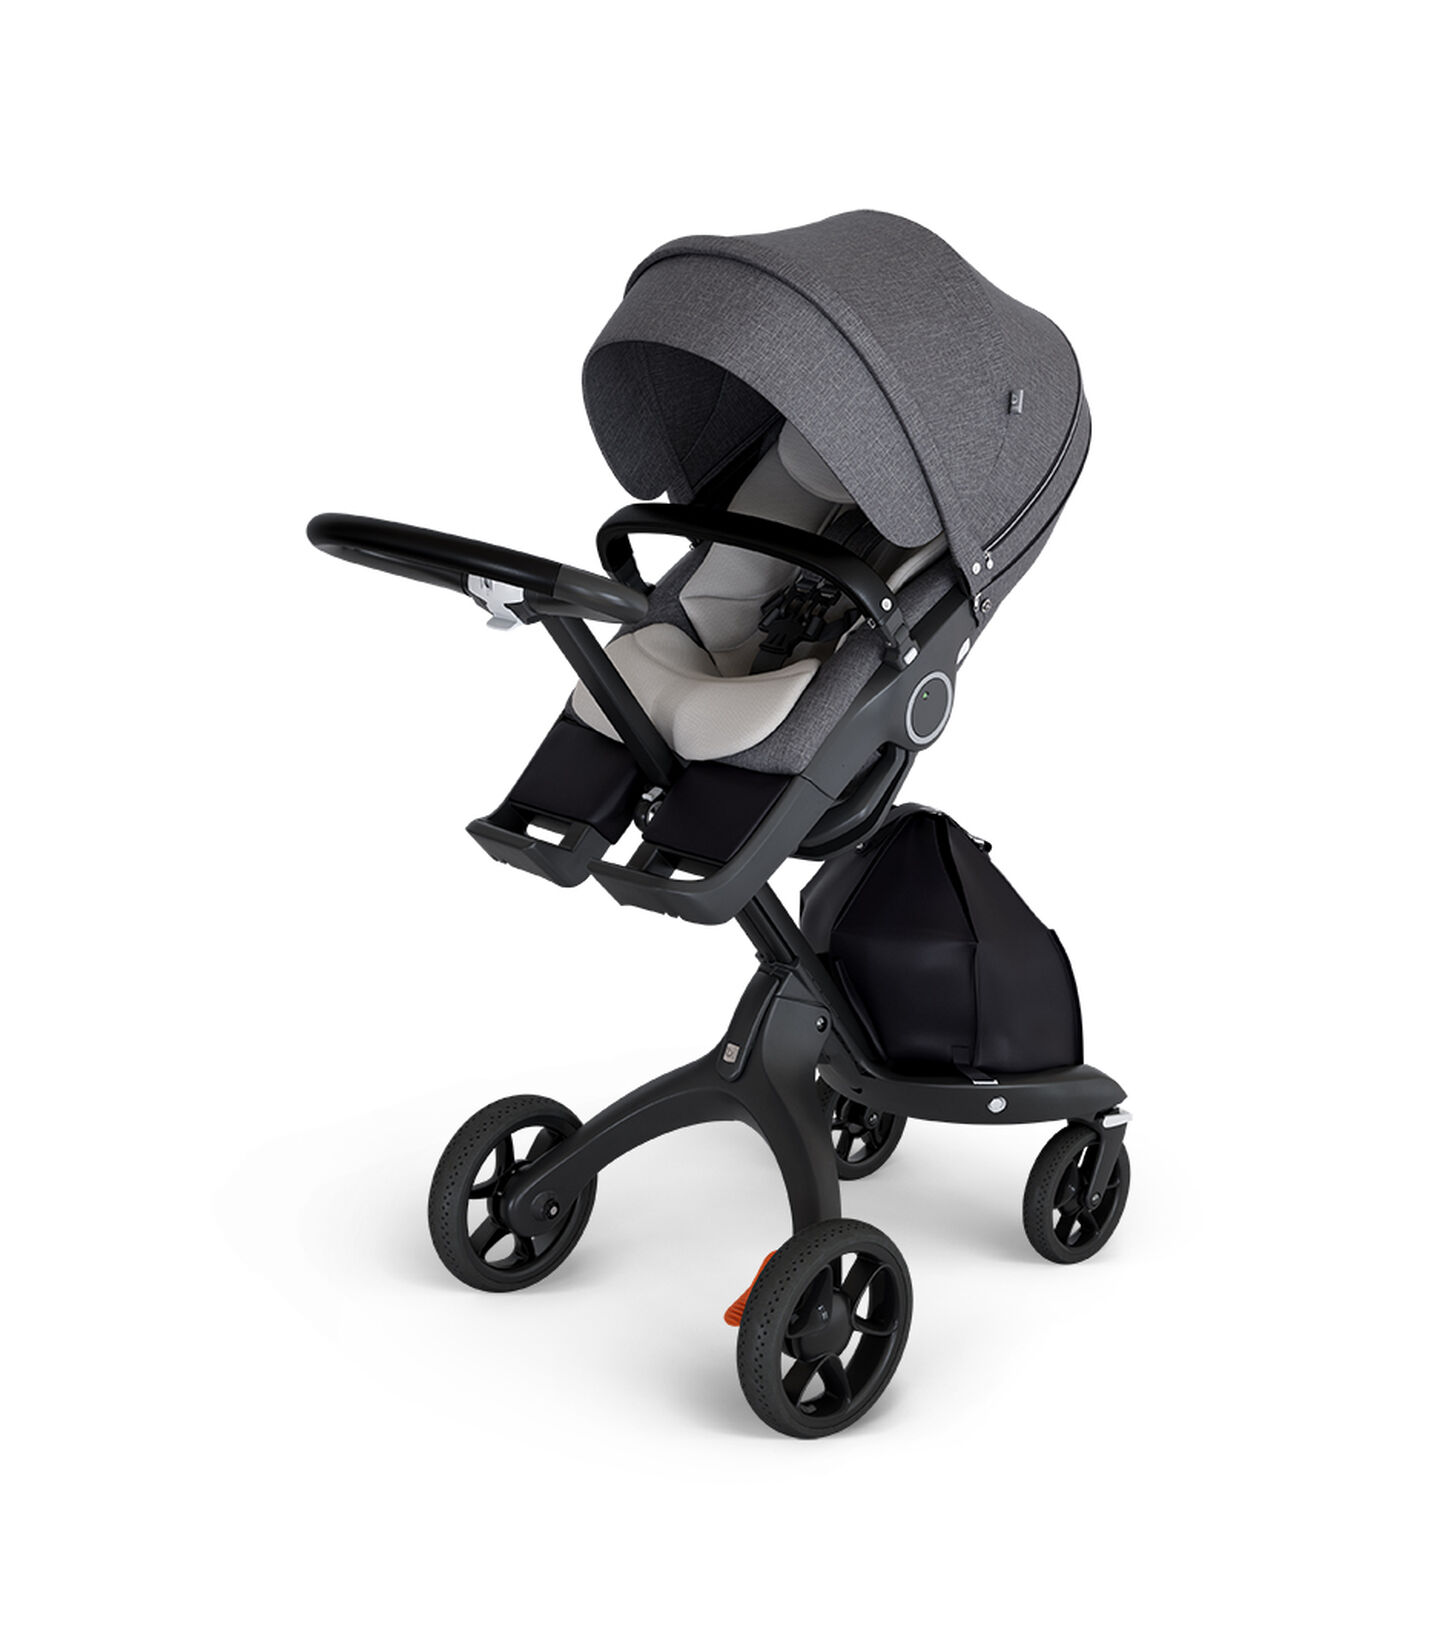 Stokke® Xplory® with Black Chassis and Stokke Stroller Seat Black Melange with Seat Inlay Mesh.